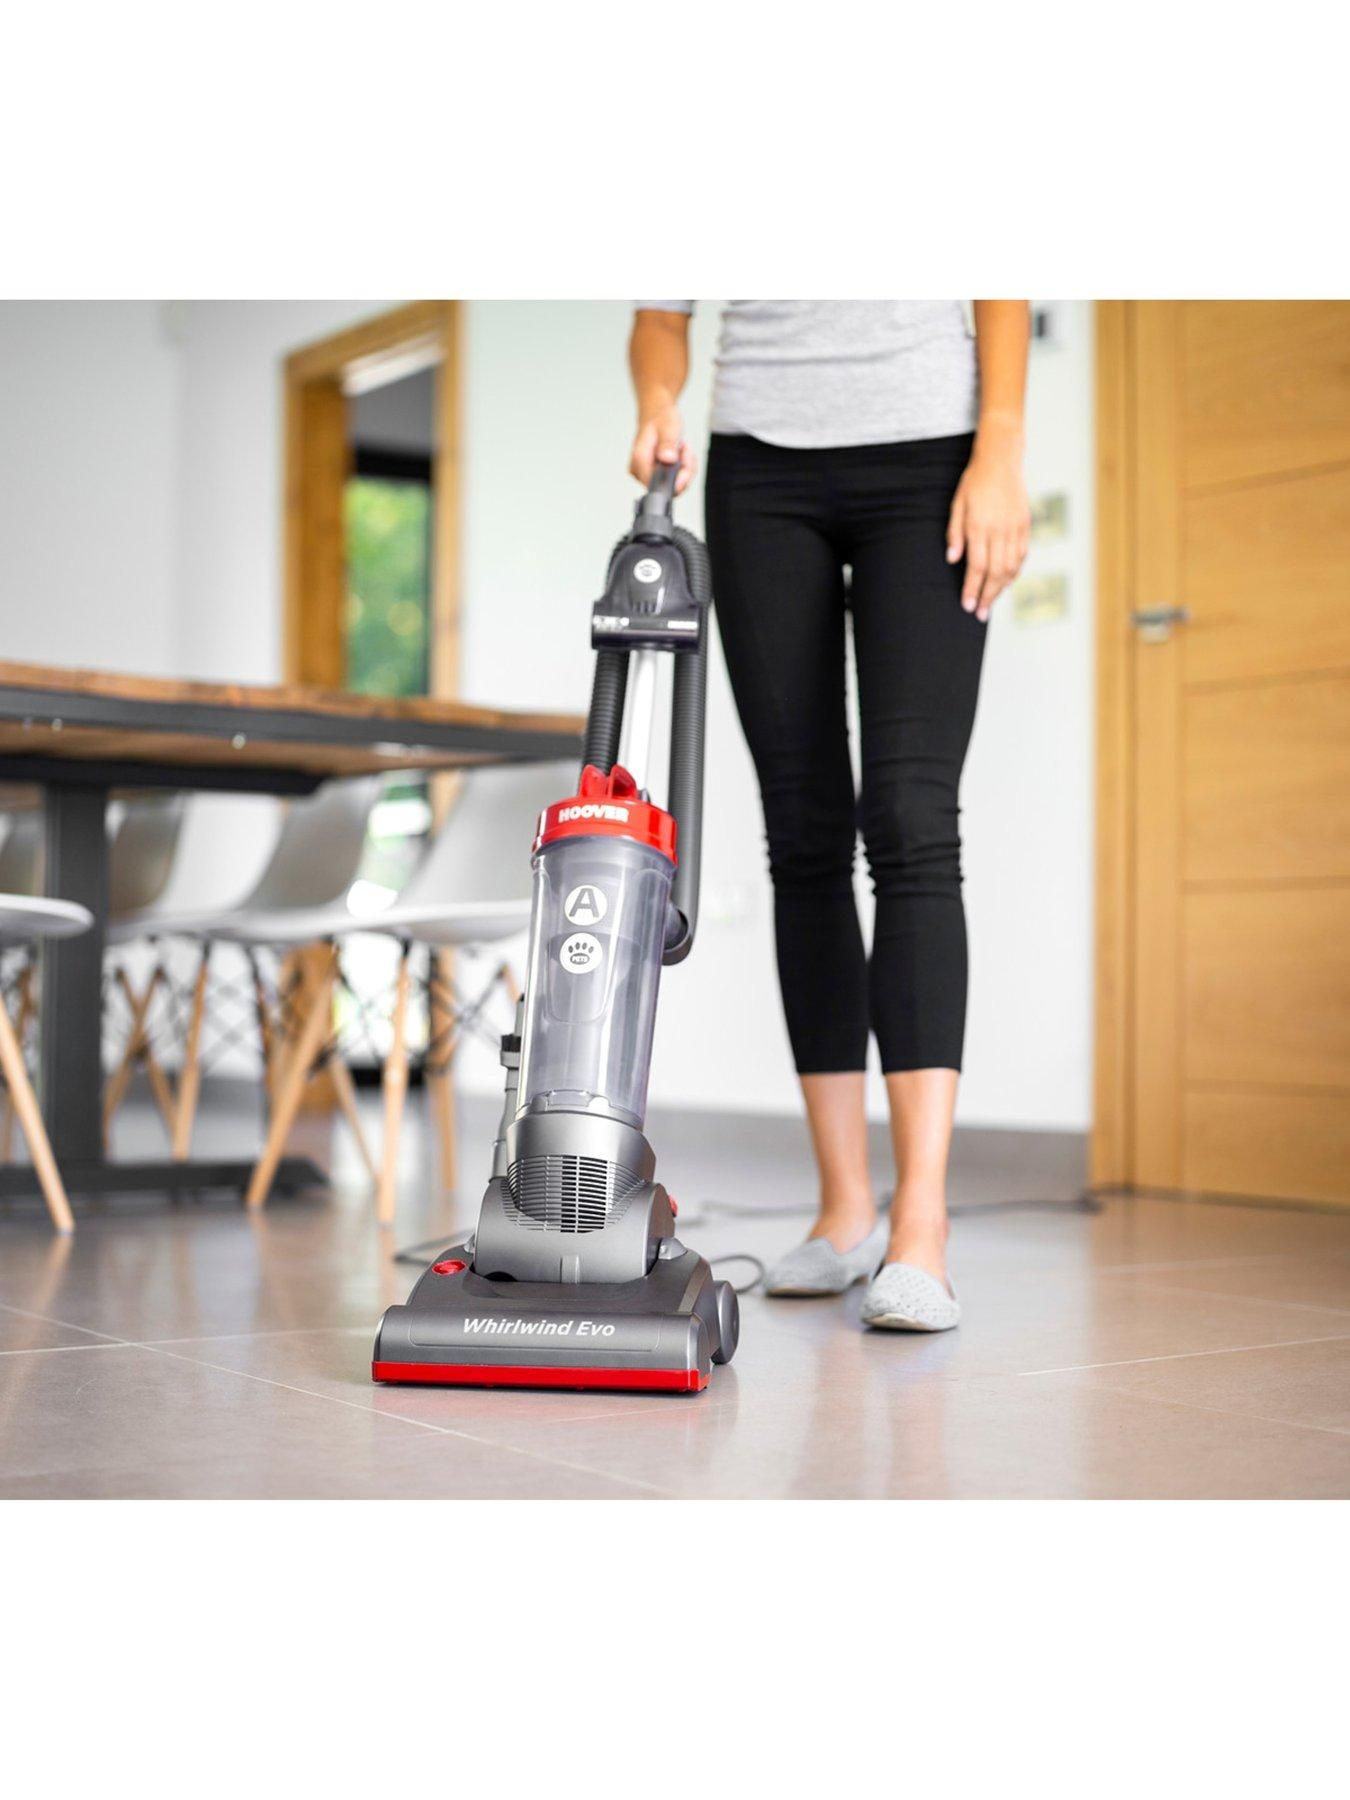 Hoover Whirlwind Evo Pets Lightweight Vacuum Cleaner